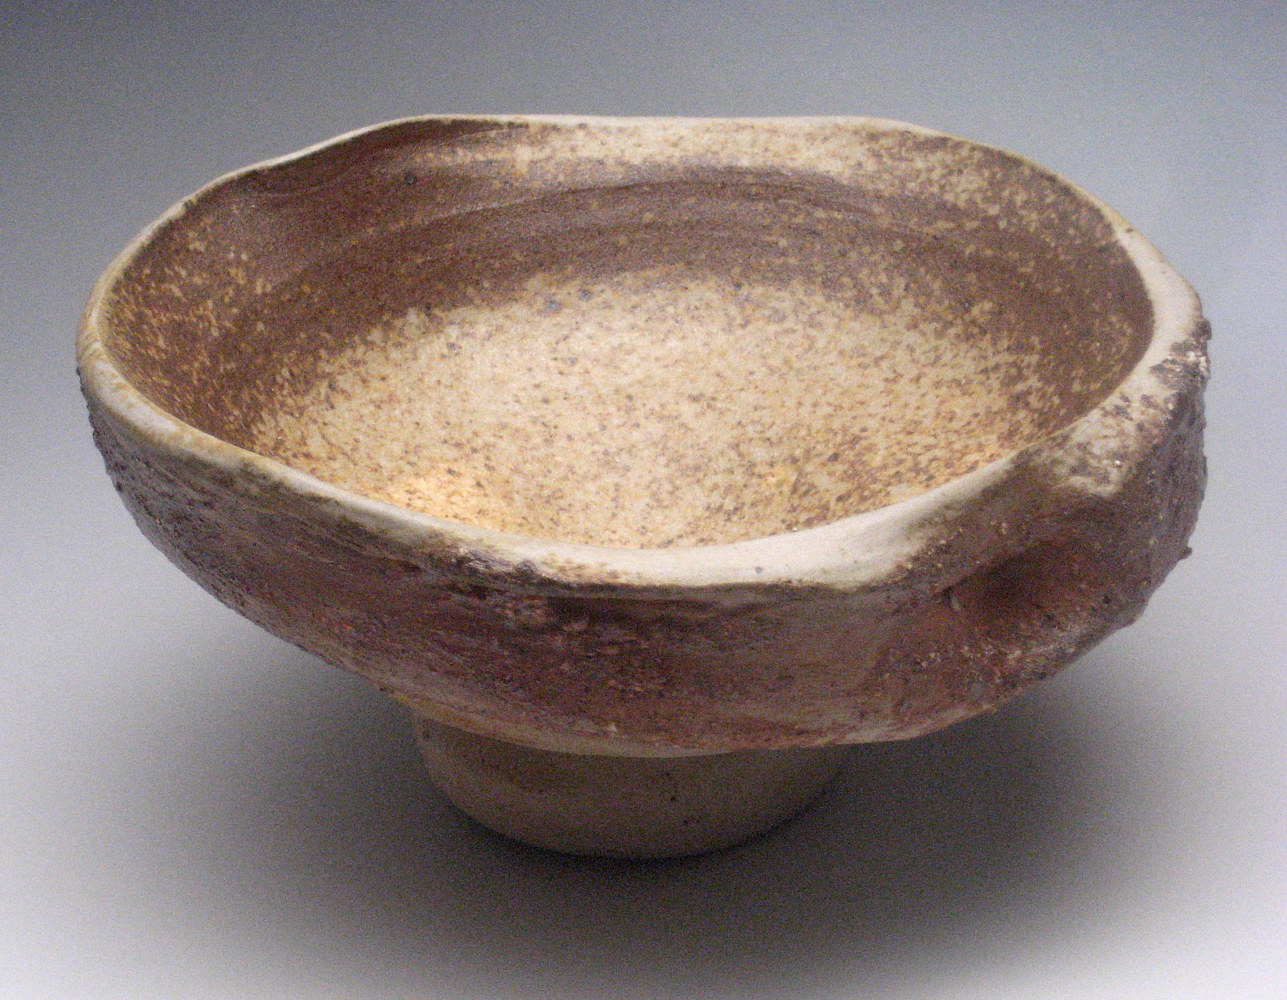 Double Walled Wood fired Bowl  by Sharon V Smith